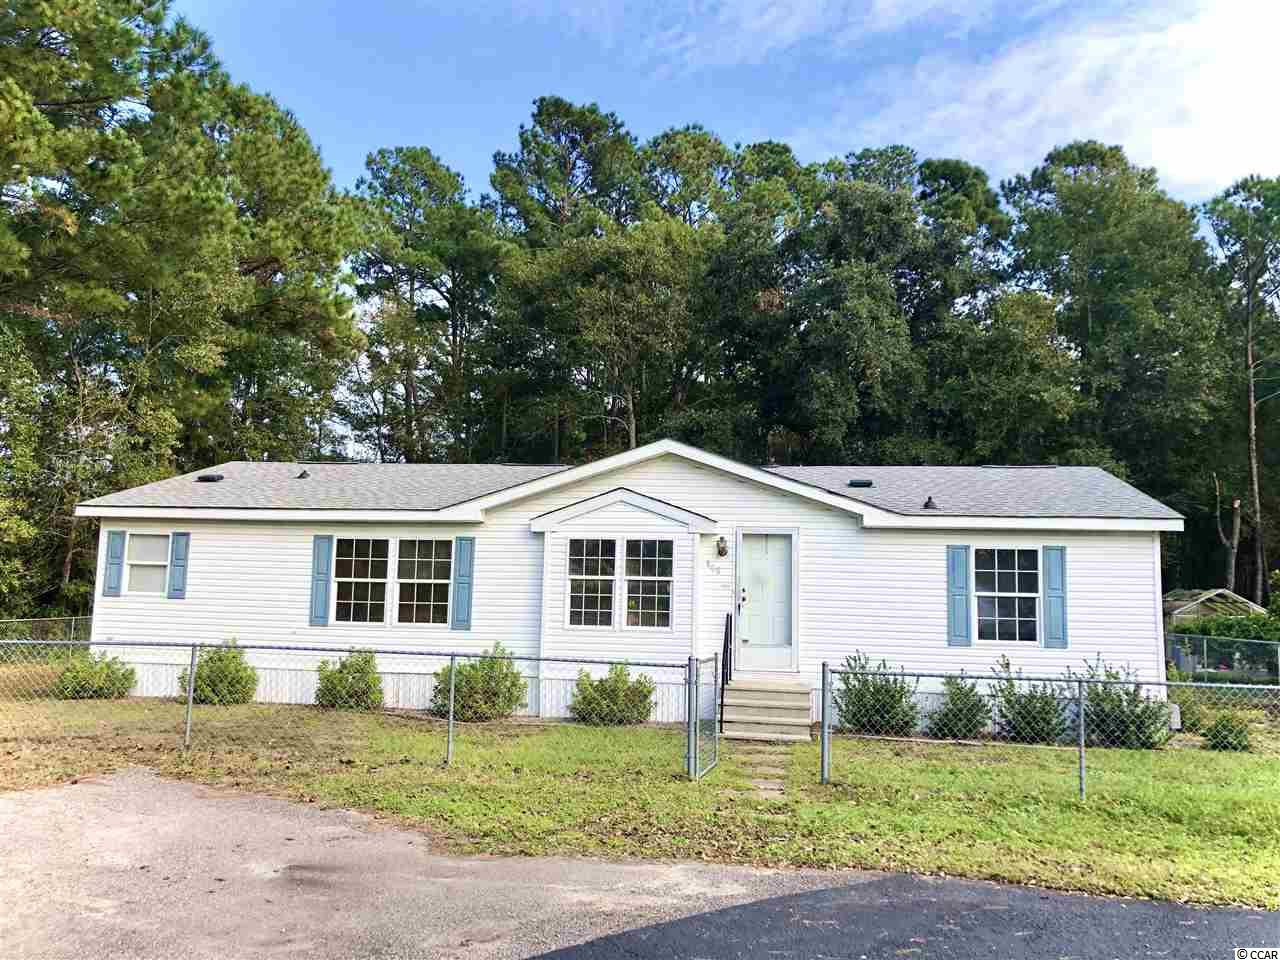 Located close to all Murrells Inlet and the Grand Strand has to offer, this spacious three bedroom two bathroom home located on a cut de sac in the well kept and well sought Coral Bay community of Murrells Inlet is a must see. This home sits on owned land with low monthly HOA.  The interior of the home offers a split floor plan with an abundance of natural lighting, living space, and storage. The kitchen is great for entertaining and for cooking all of your finest cuisines. This home has a large fenced in yard for you furry friends to live their great outdoor dreams as well. Contact your agent or the listing agent to check this home out today!